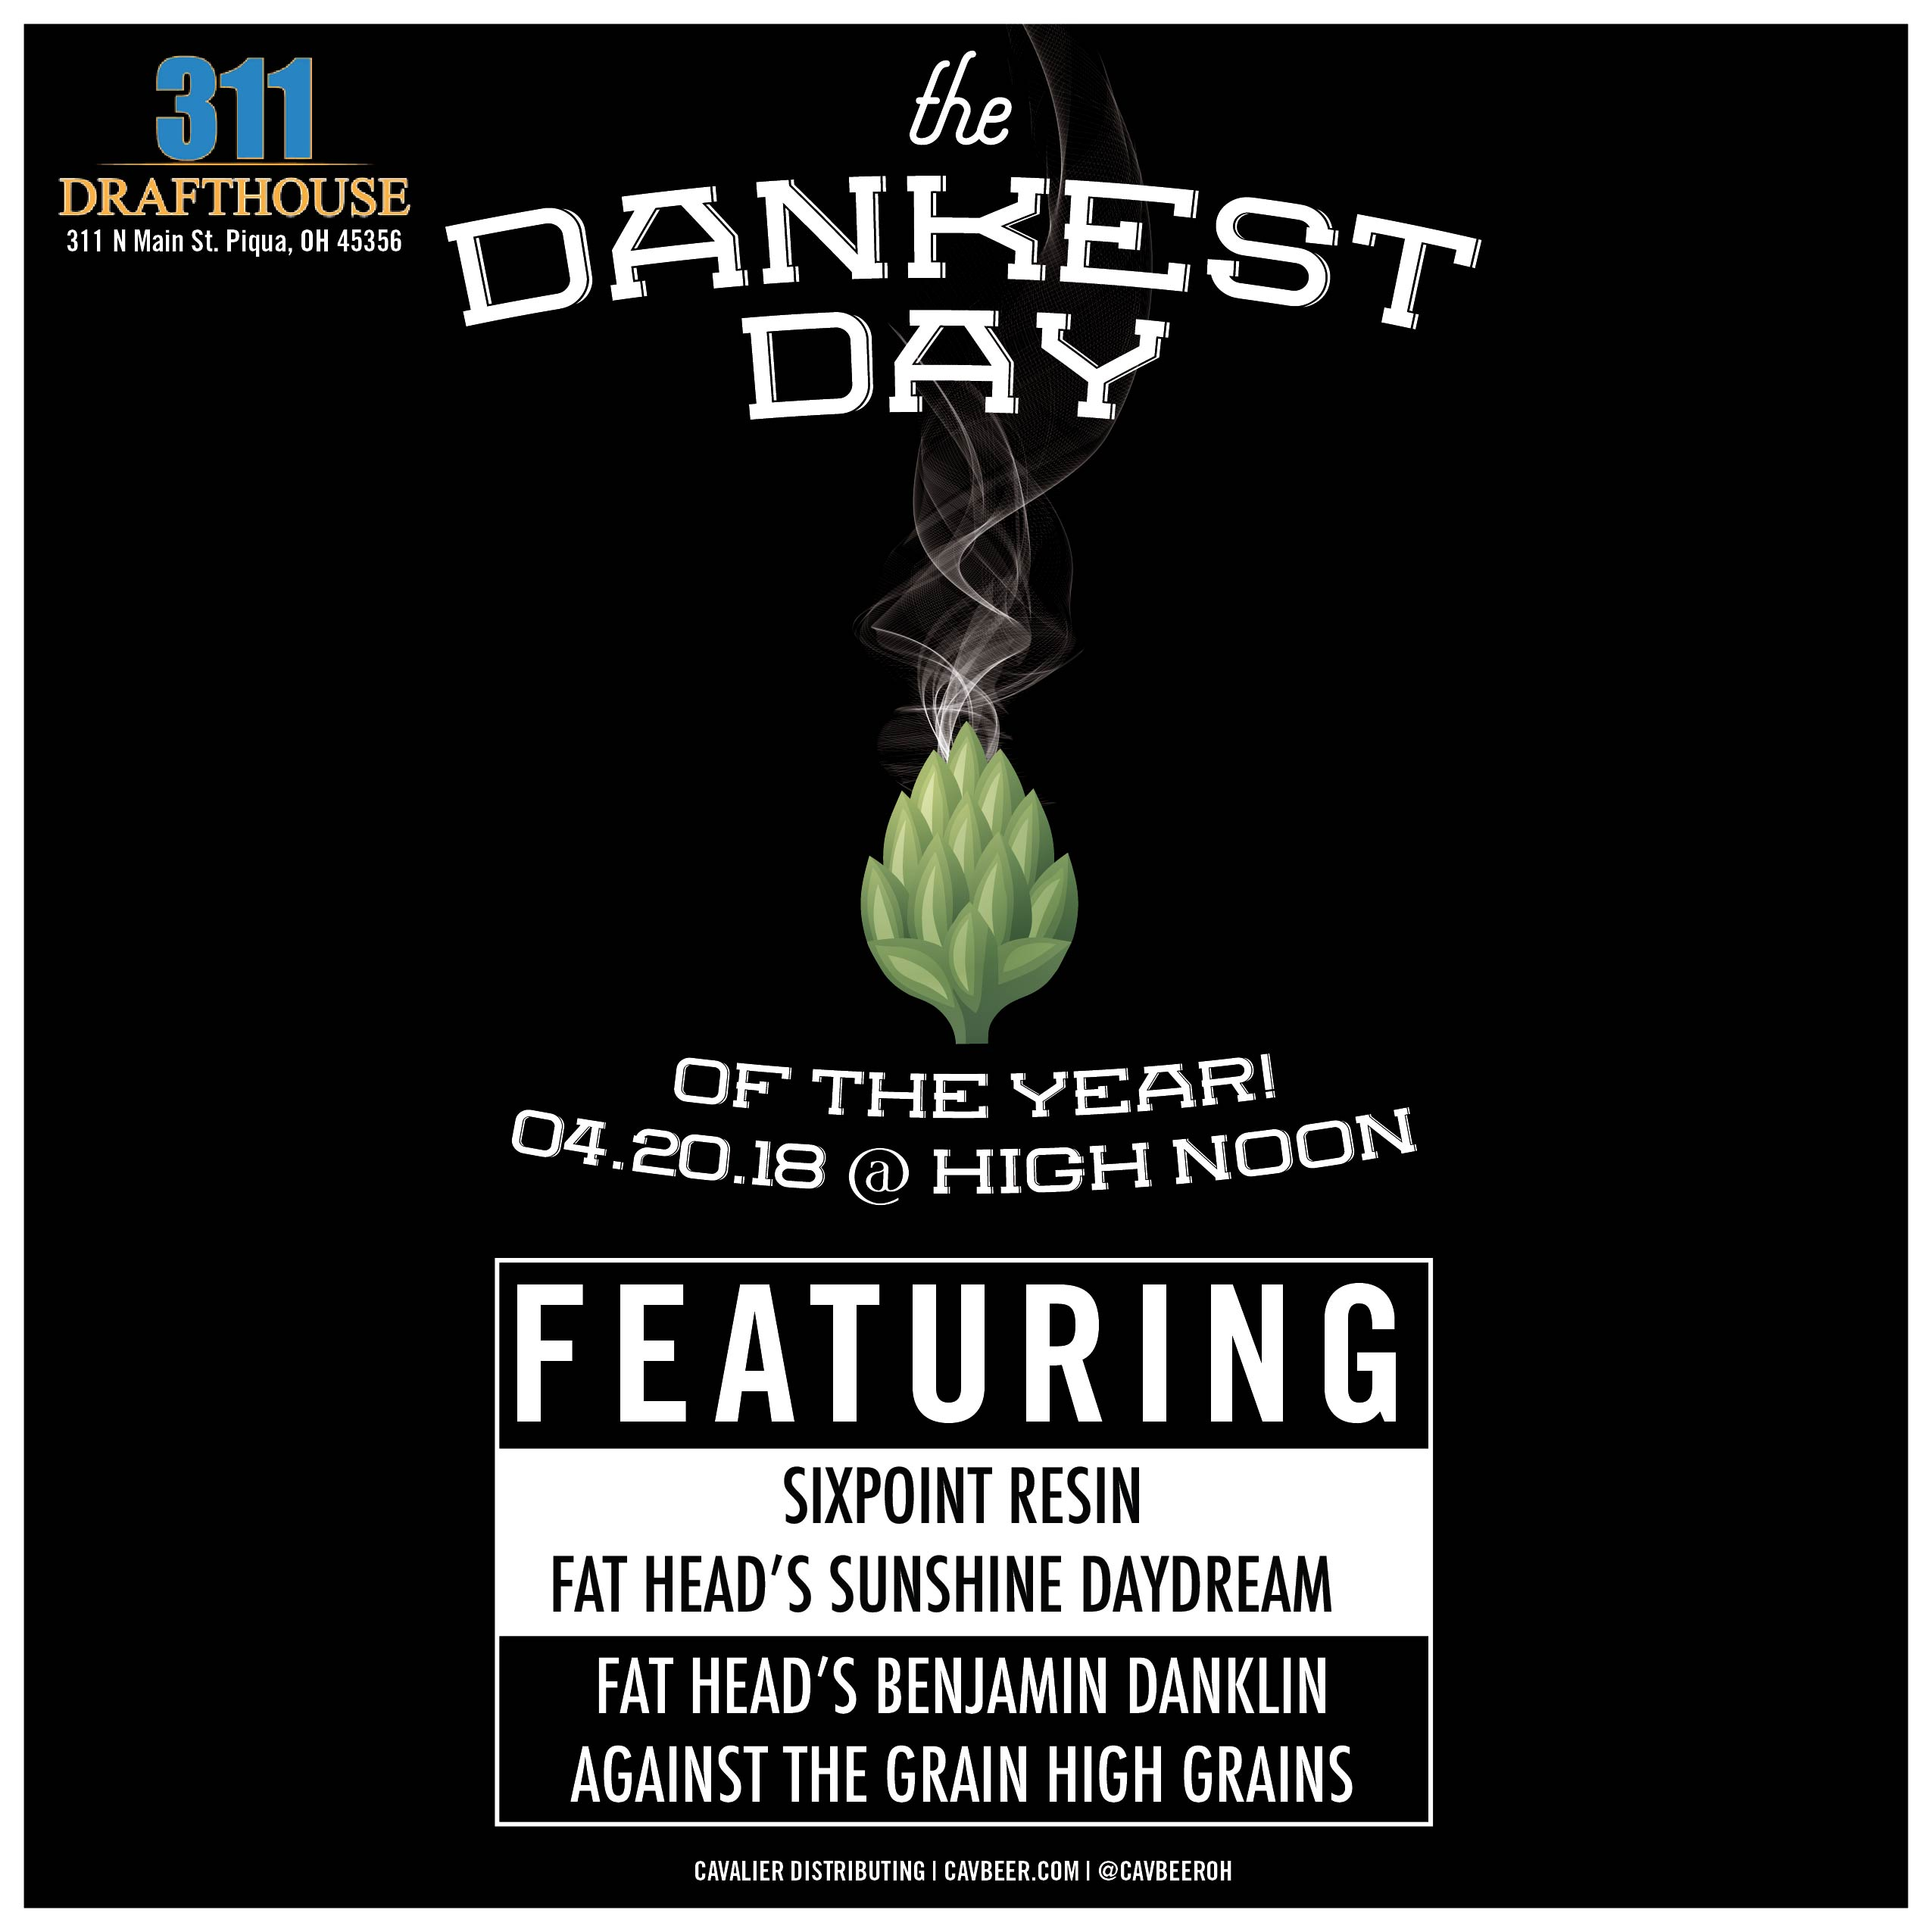 The Dankest Day @ 311 Drafthouse